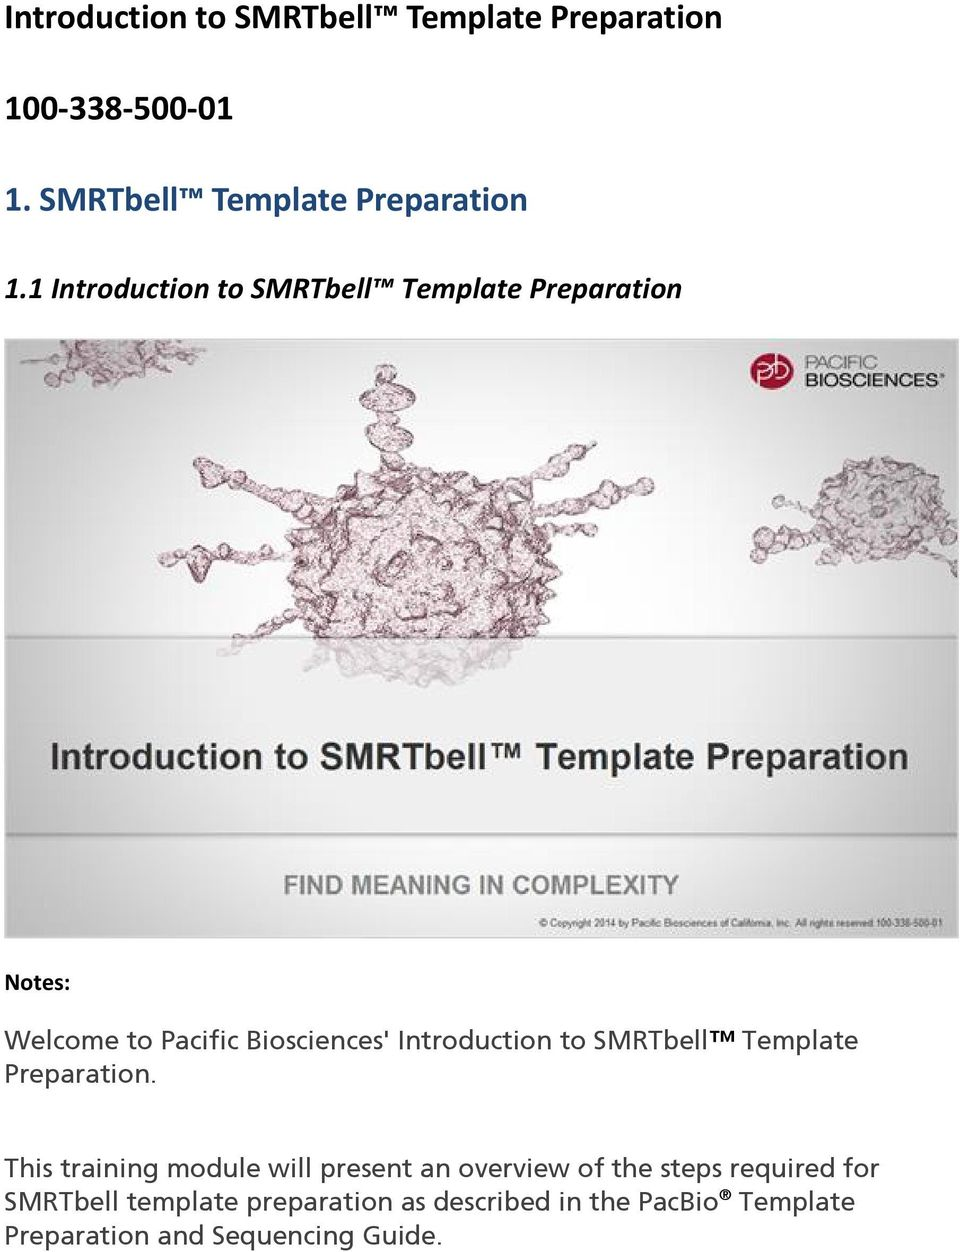 1 Introduction to SMRTbell Template Preparation Welcome to Pacific Biosciences' Introduction to